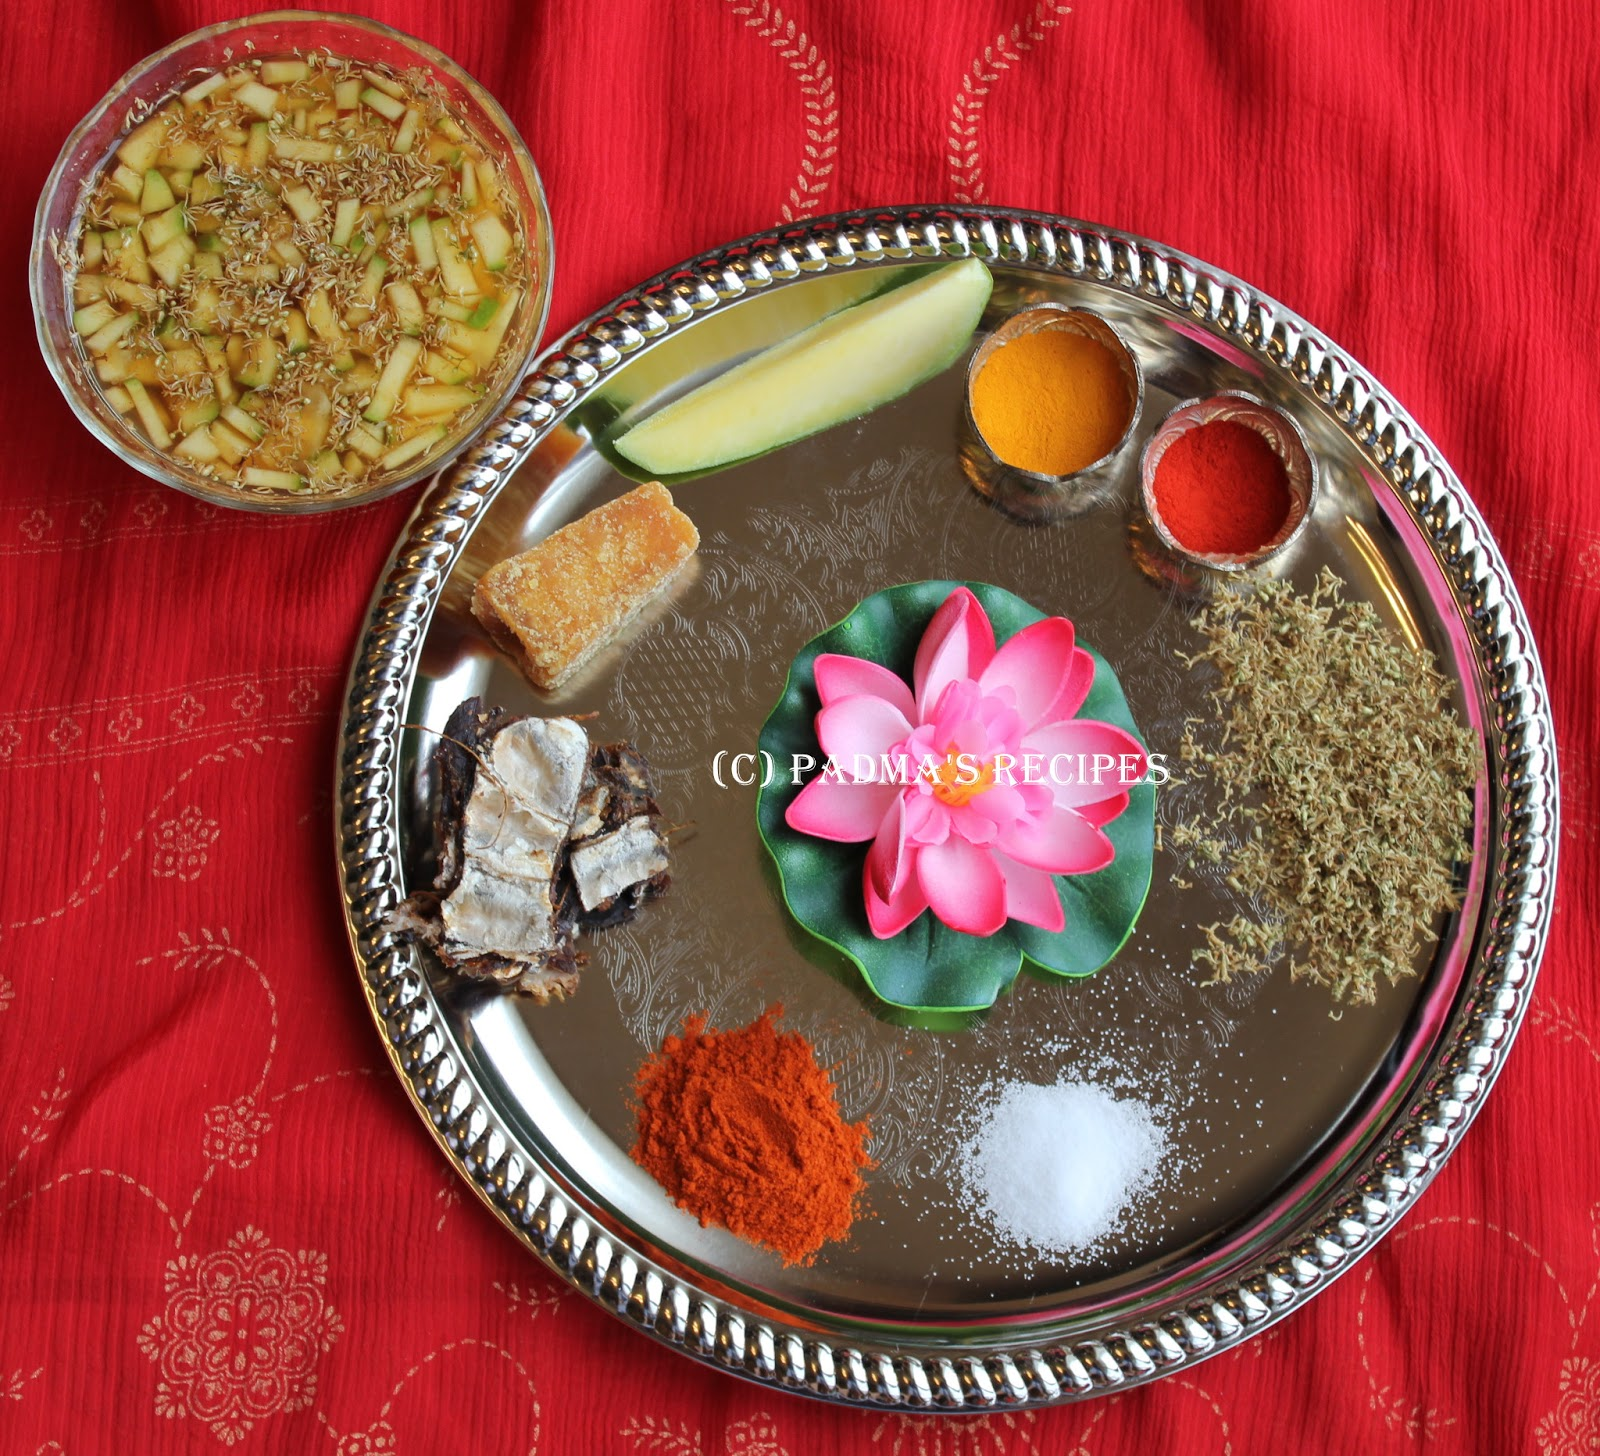 Padmas recipes ugadi pachadi and ugadi recipes ugadi is derived from the sanskrit work yuga age and aadibeginning the beginning of a new age each year it falls on a different date in the month of forumfinder Choice Image